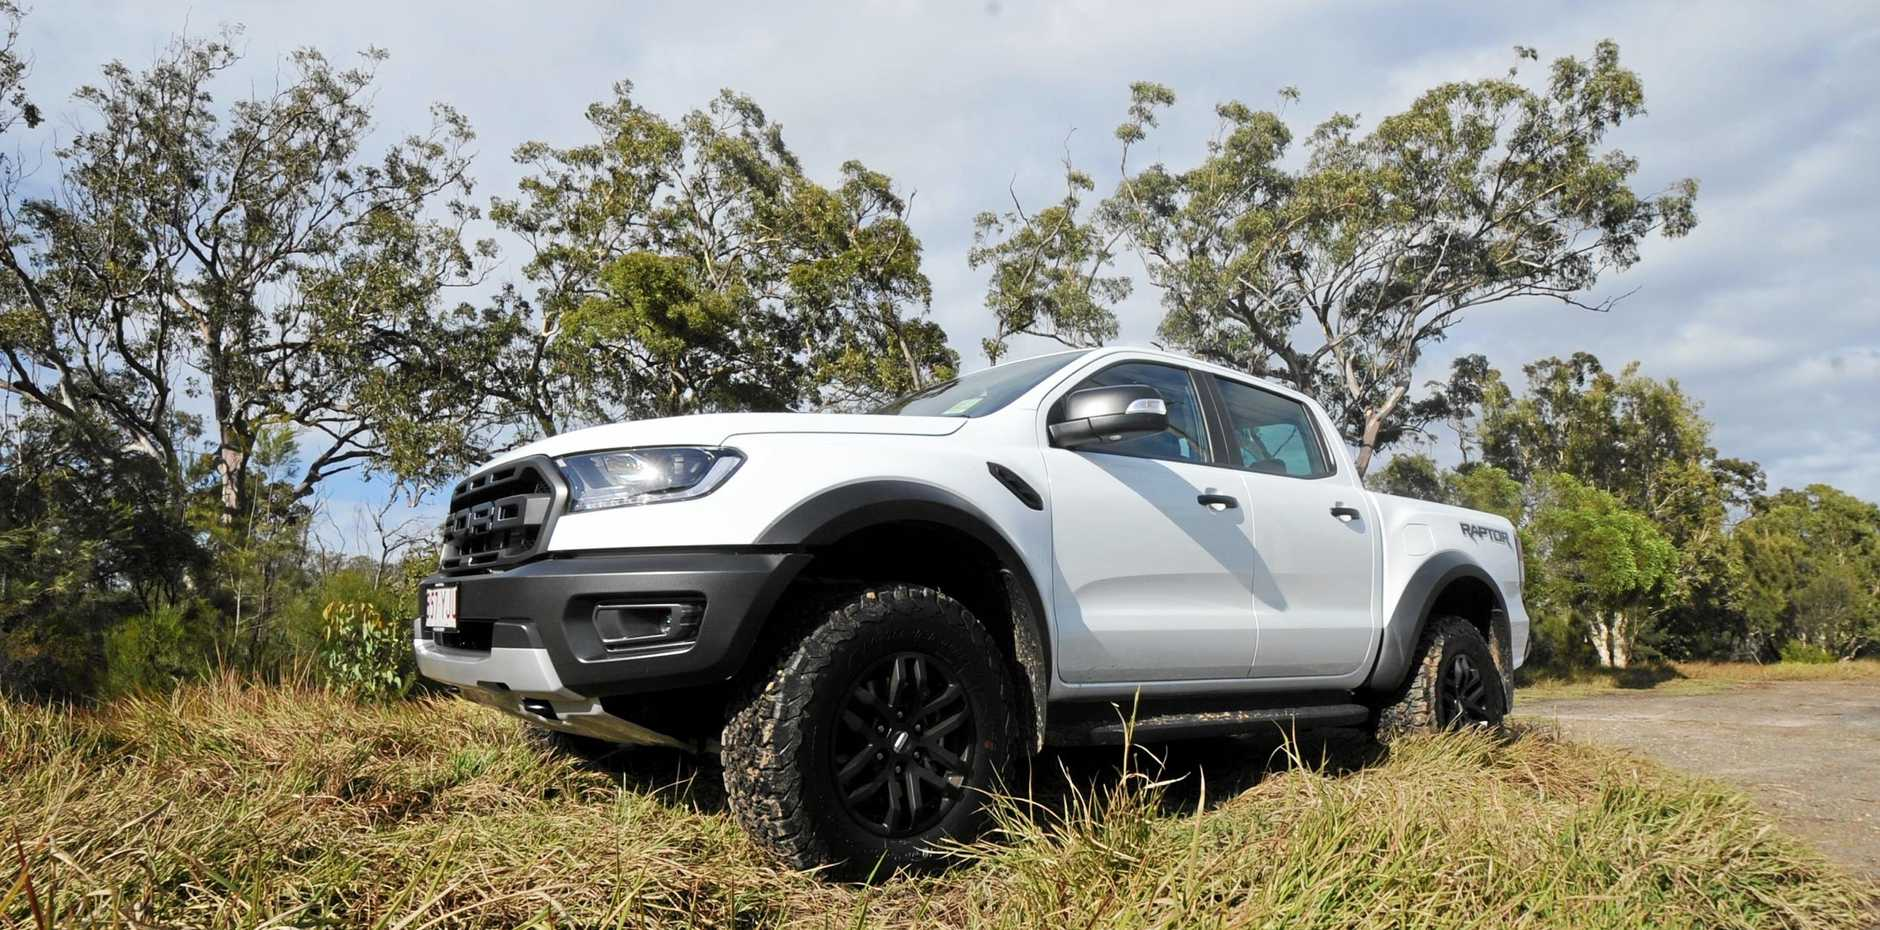 The Ford Ranger Raptor is motivated by a 2.0-litre twin-turbo diesel engine.